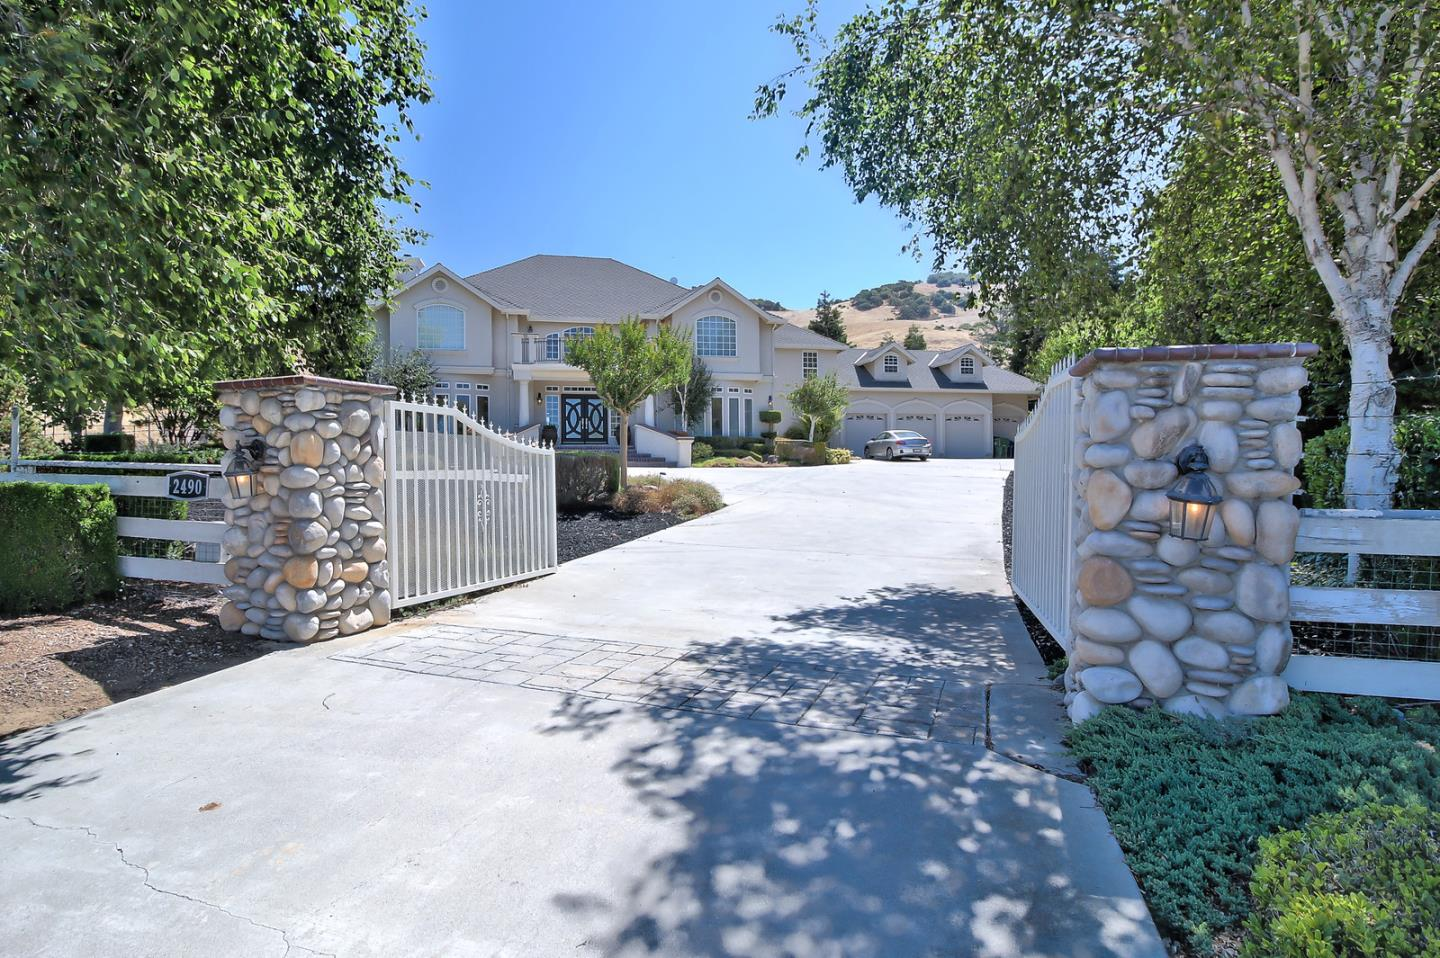 2490 Howell Lane, GILROY, CA 95020